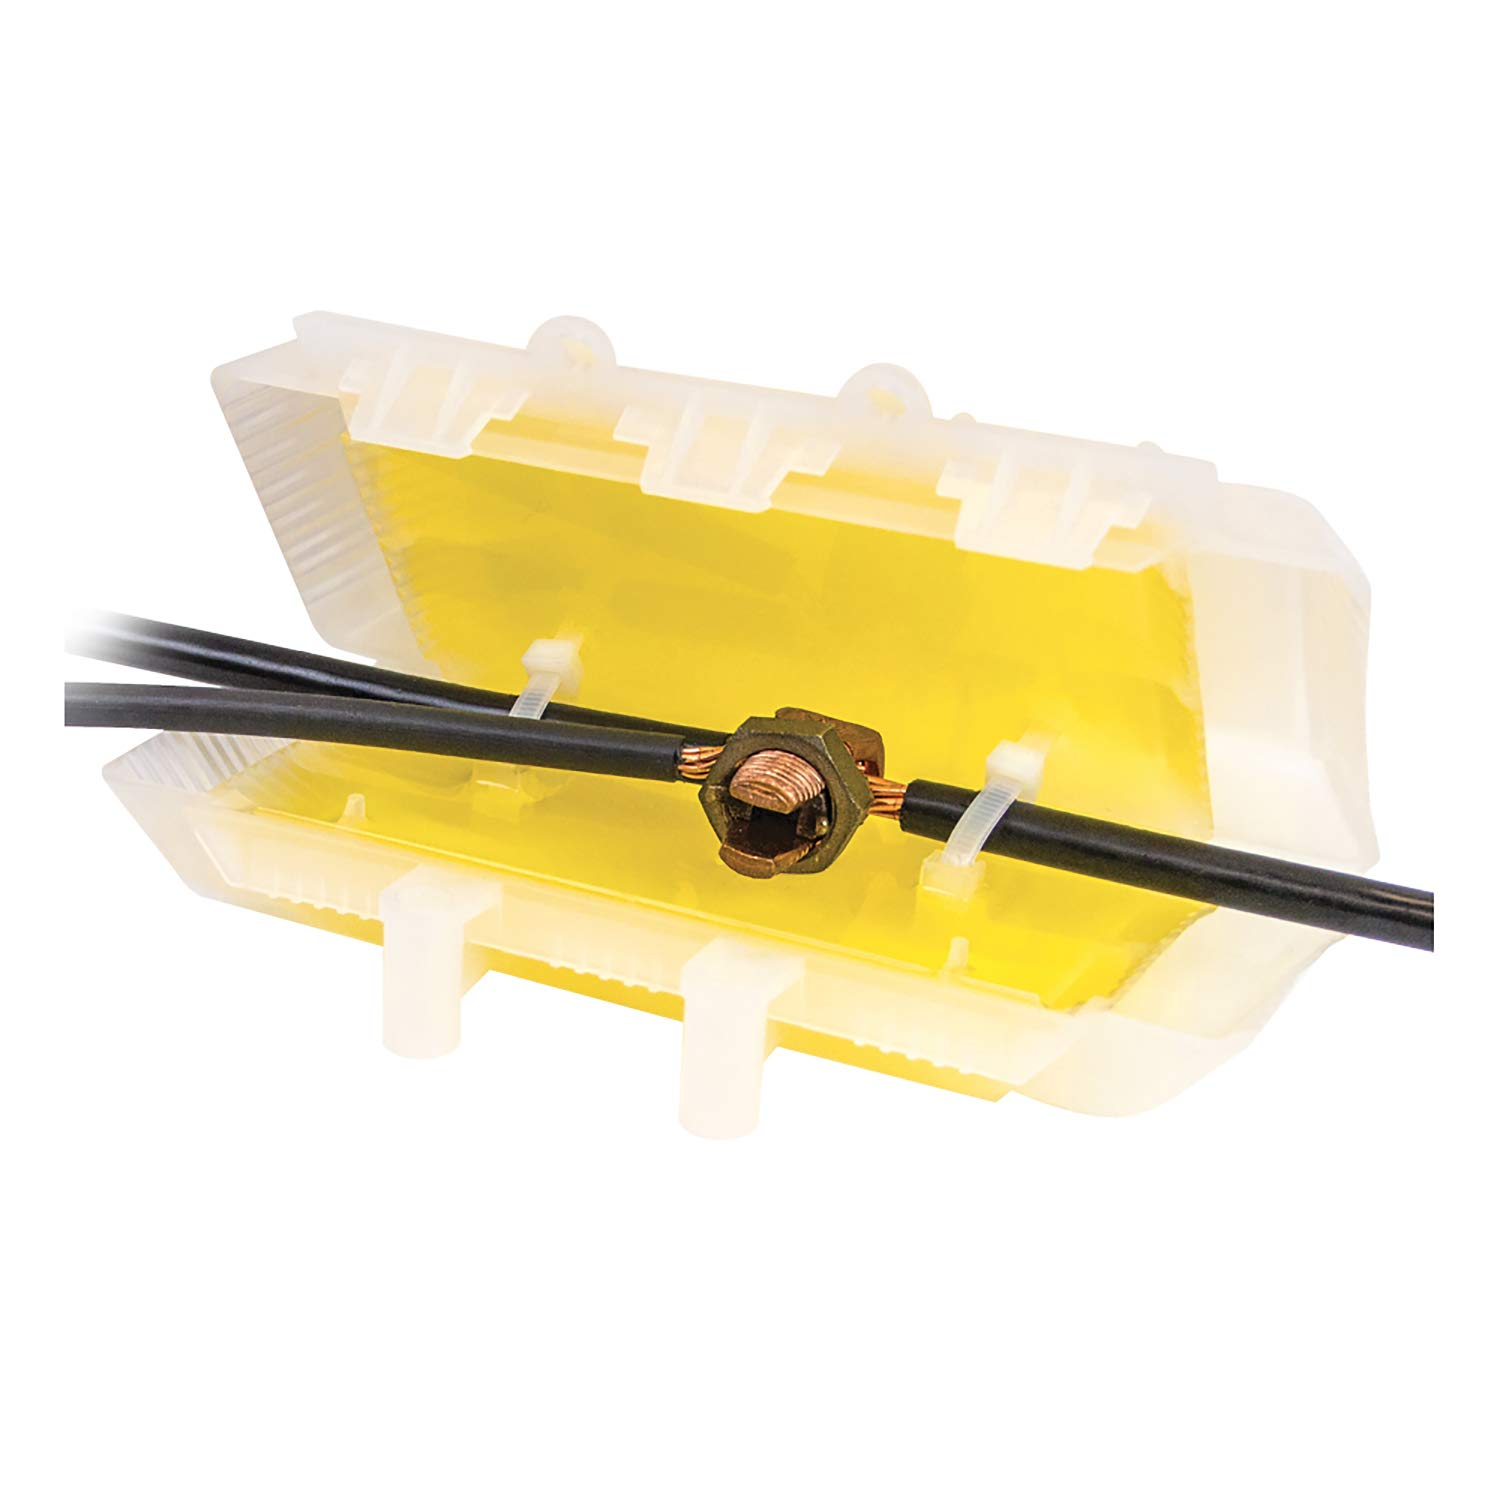 King Innovation 98010 DryConn Visilock wire connector, Yellow